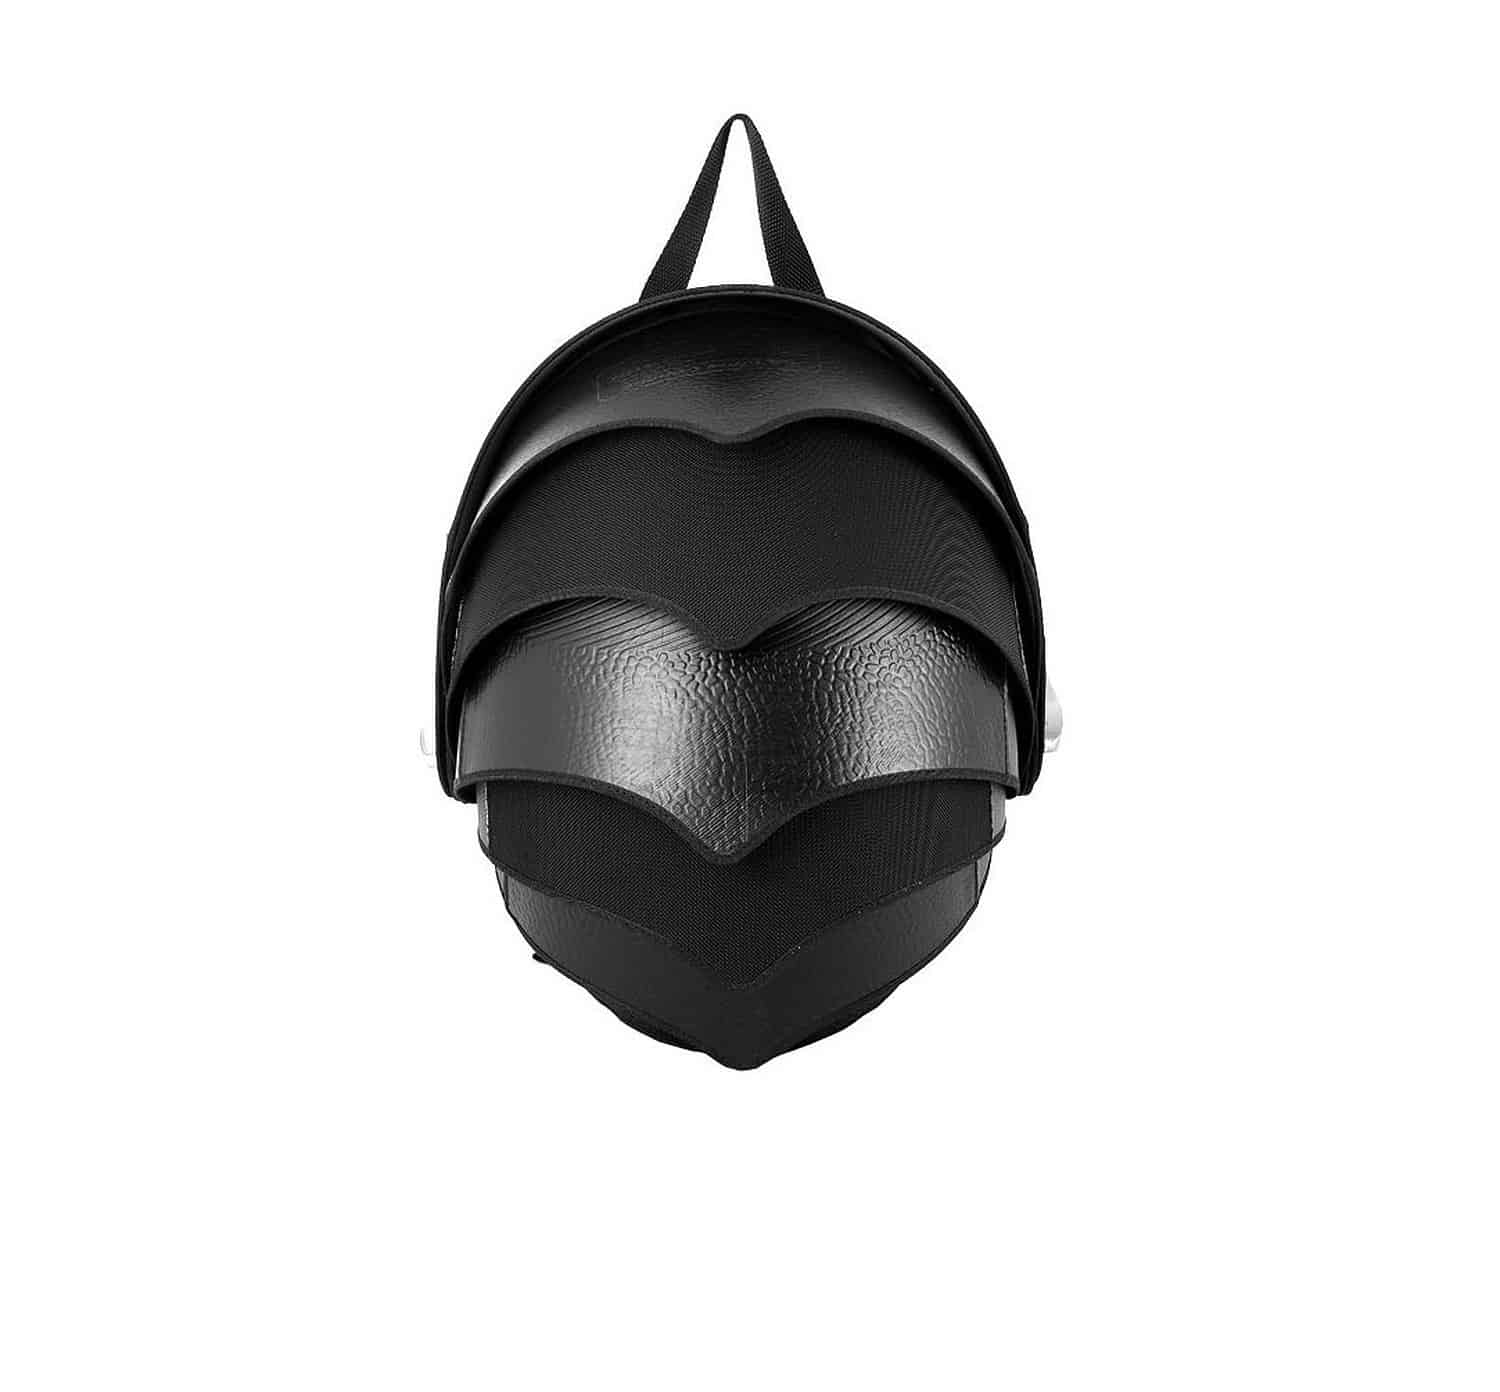 Cyclus Pangolin Backpack made of reused tyre inner tubes Cool Stuff to Buy Nature inspired Product Design